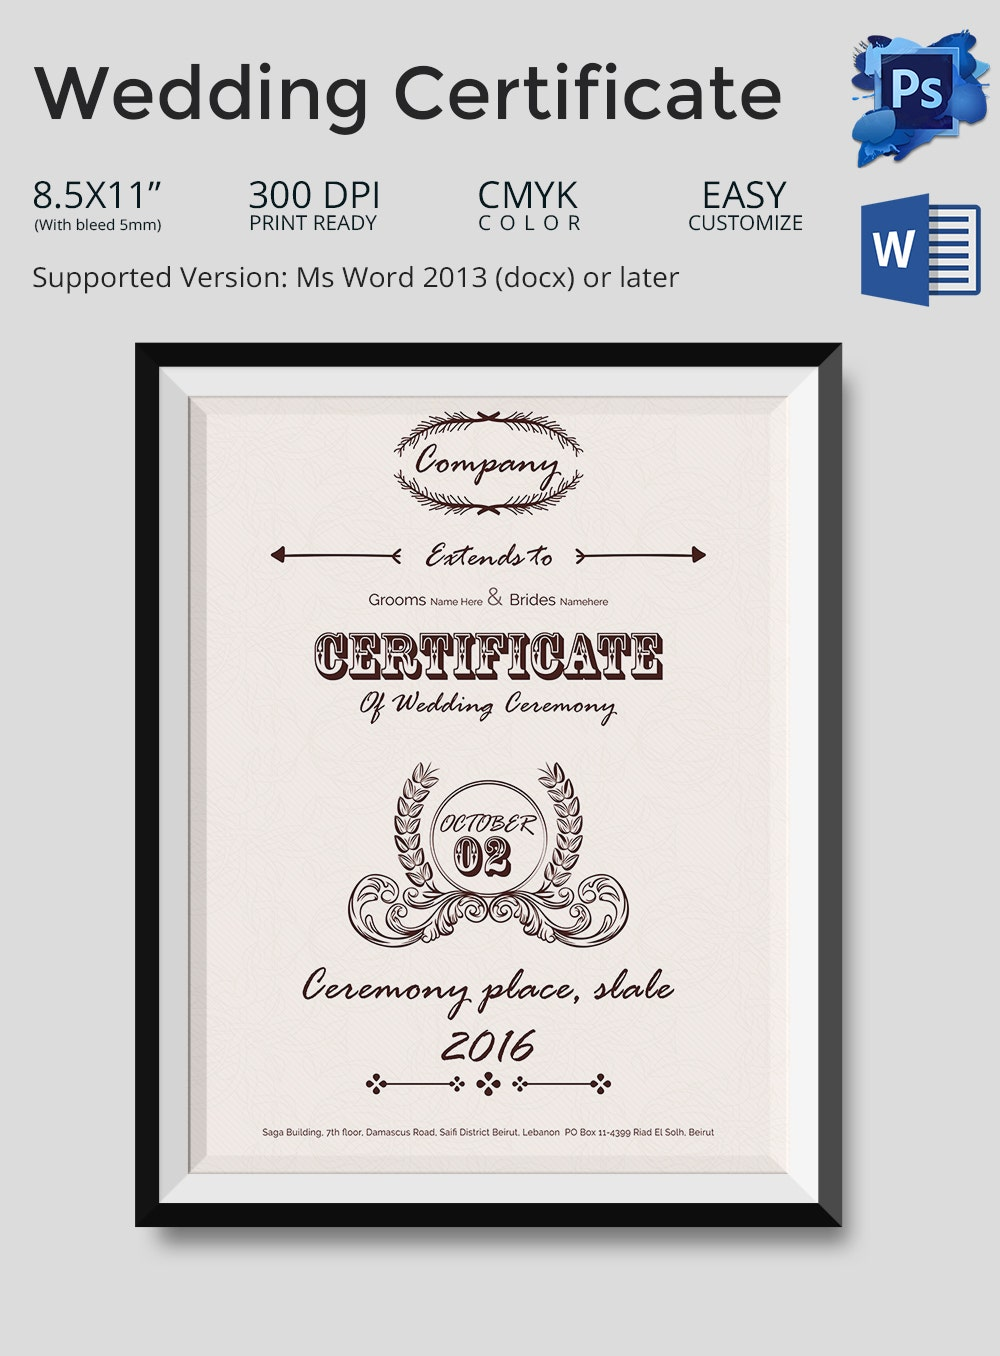 Wedding Cetrificate Template